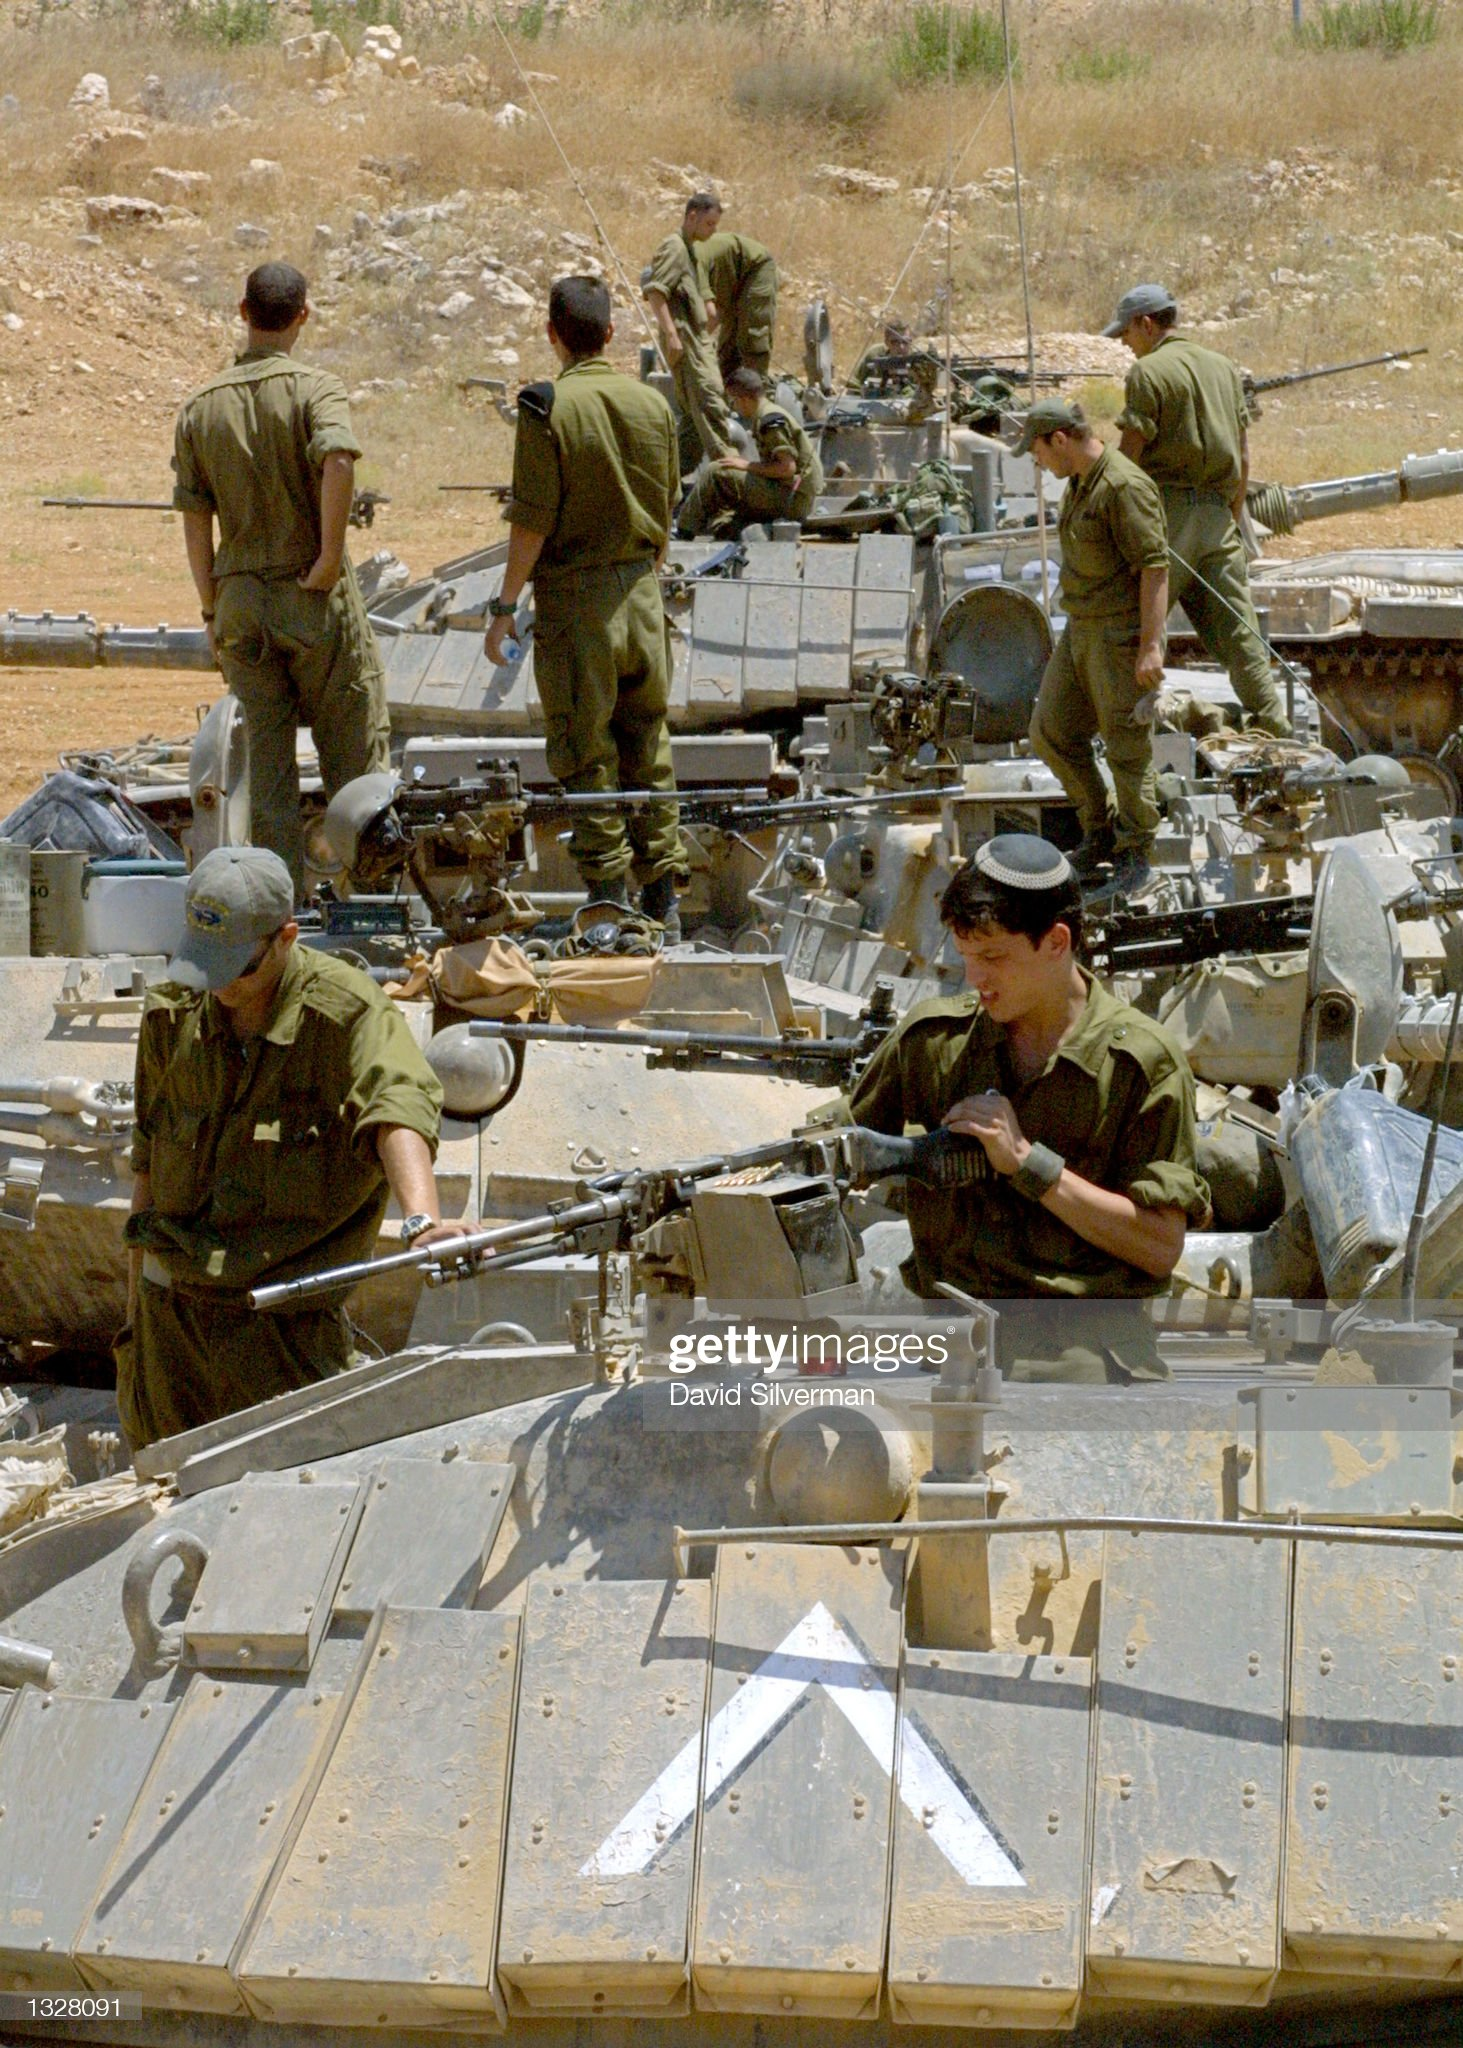 https://media.gettyimages.com/photos/israeli-soldiers-inspects-the-weapons-on-their-m60-tanks-after-their-picture-id1328091?s=2048x2048